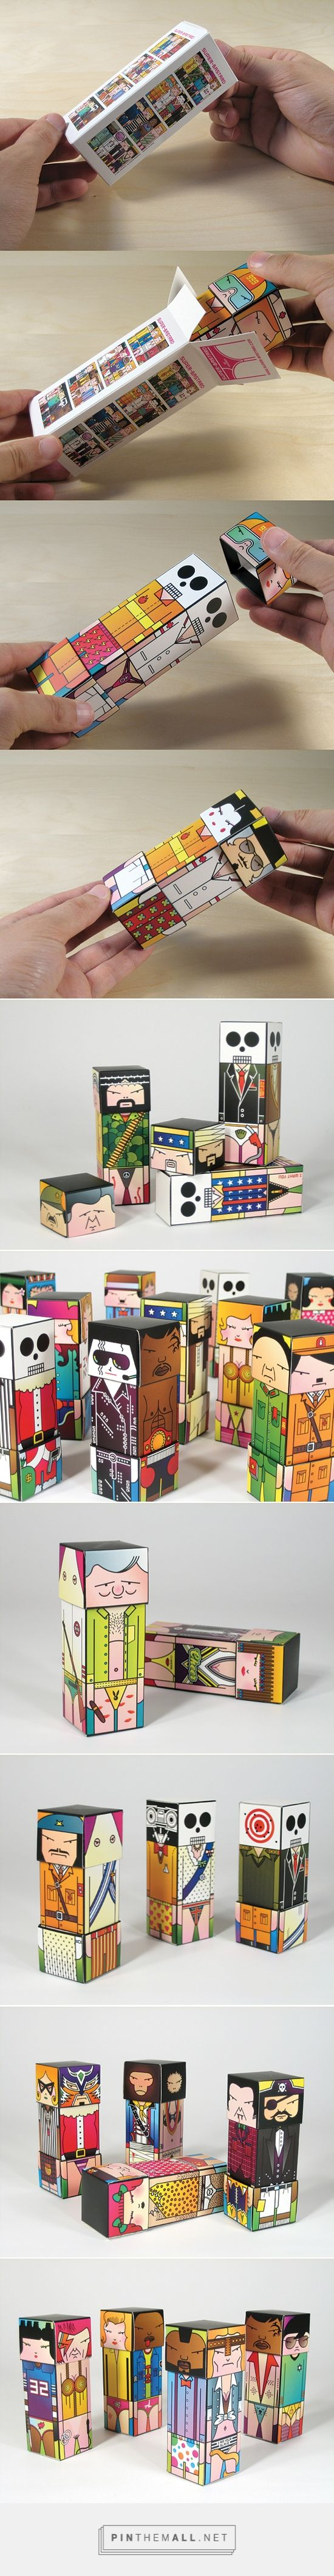 Super-Bastard Box Art Characters on Behance via undoboy curated by Packaging Diva PD. Super-Bastard Box Art Characters designed, illustrated concept packaging for their first designer toy : )